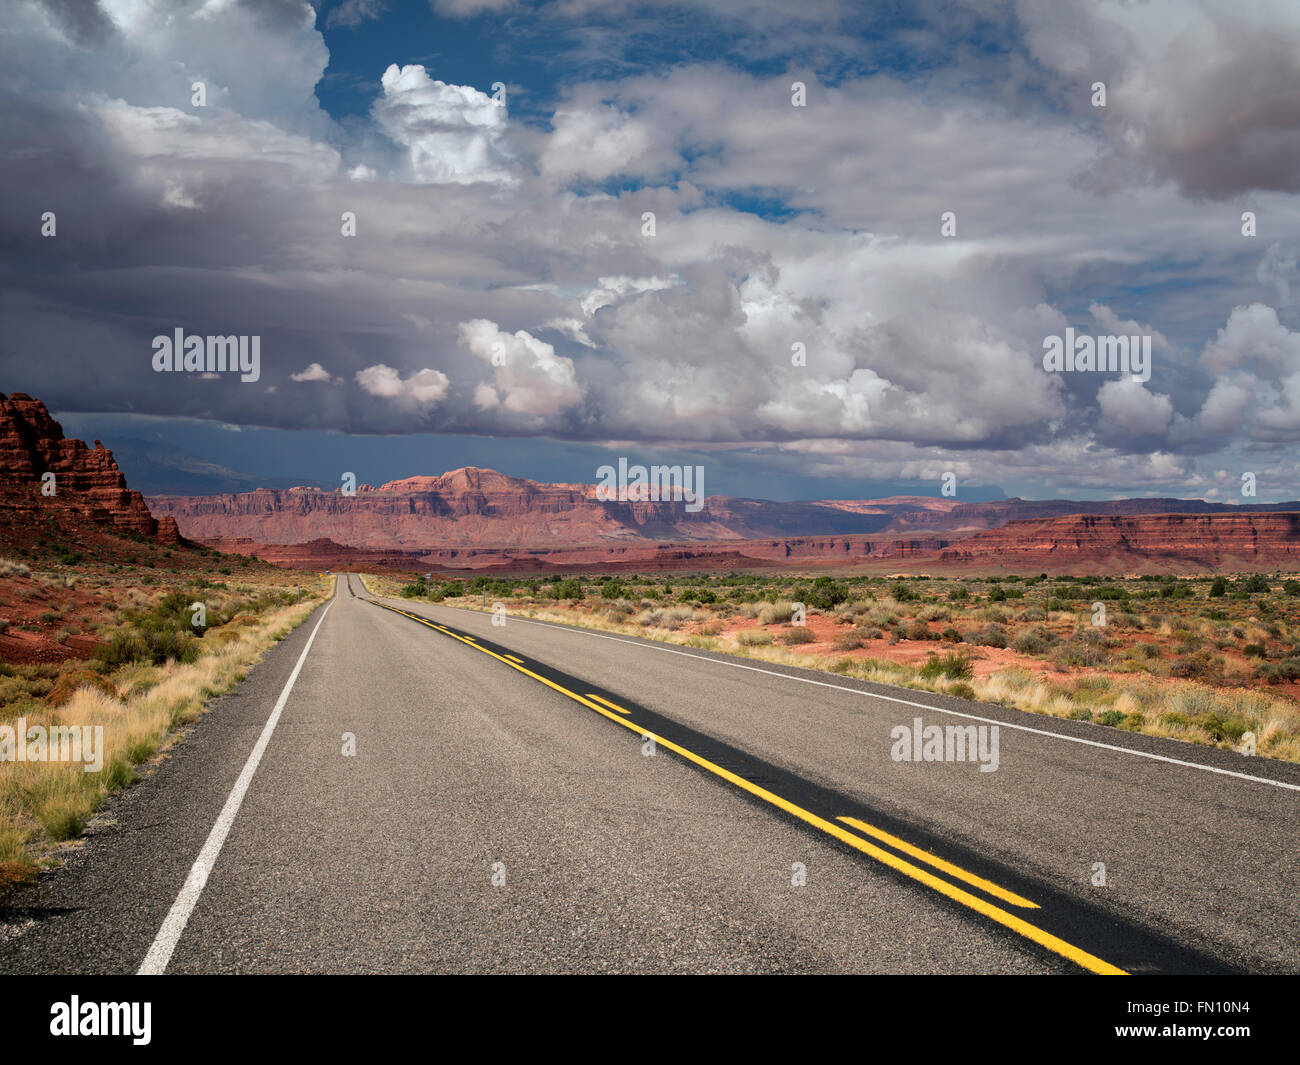 E su strada di montagna con nuvole temporalesche. Scenic Byway Hwy 95, Glen Canyon National Recreation Area, Utah Immagini Stock